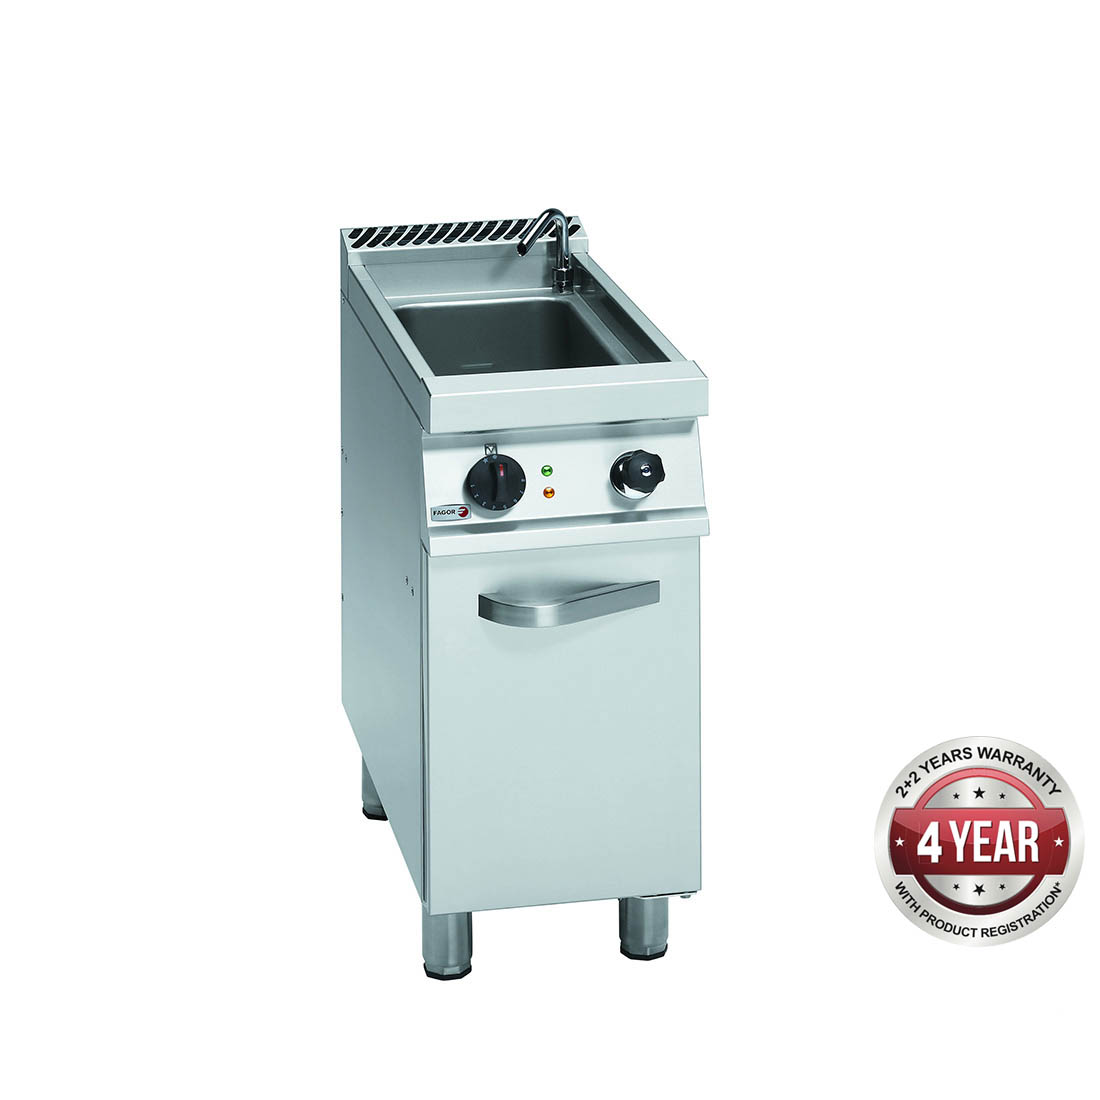 Fagor 700 series natural gas pasta cooker with cast iron burners CPG7-05